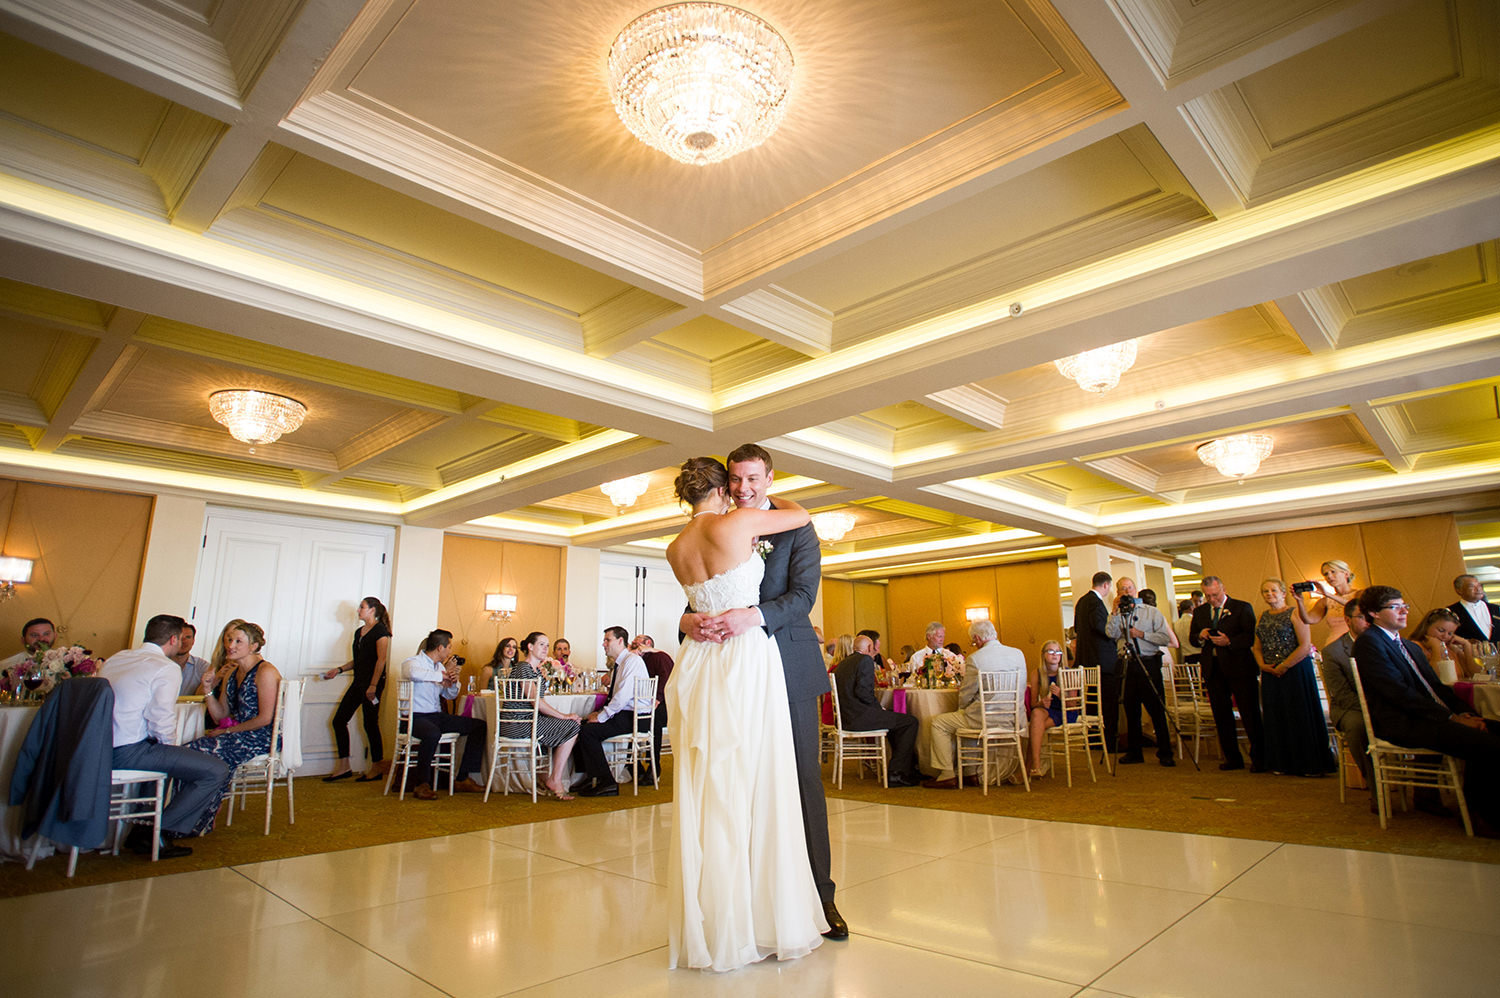 The first dance at a La Valencia wedding reception